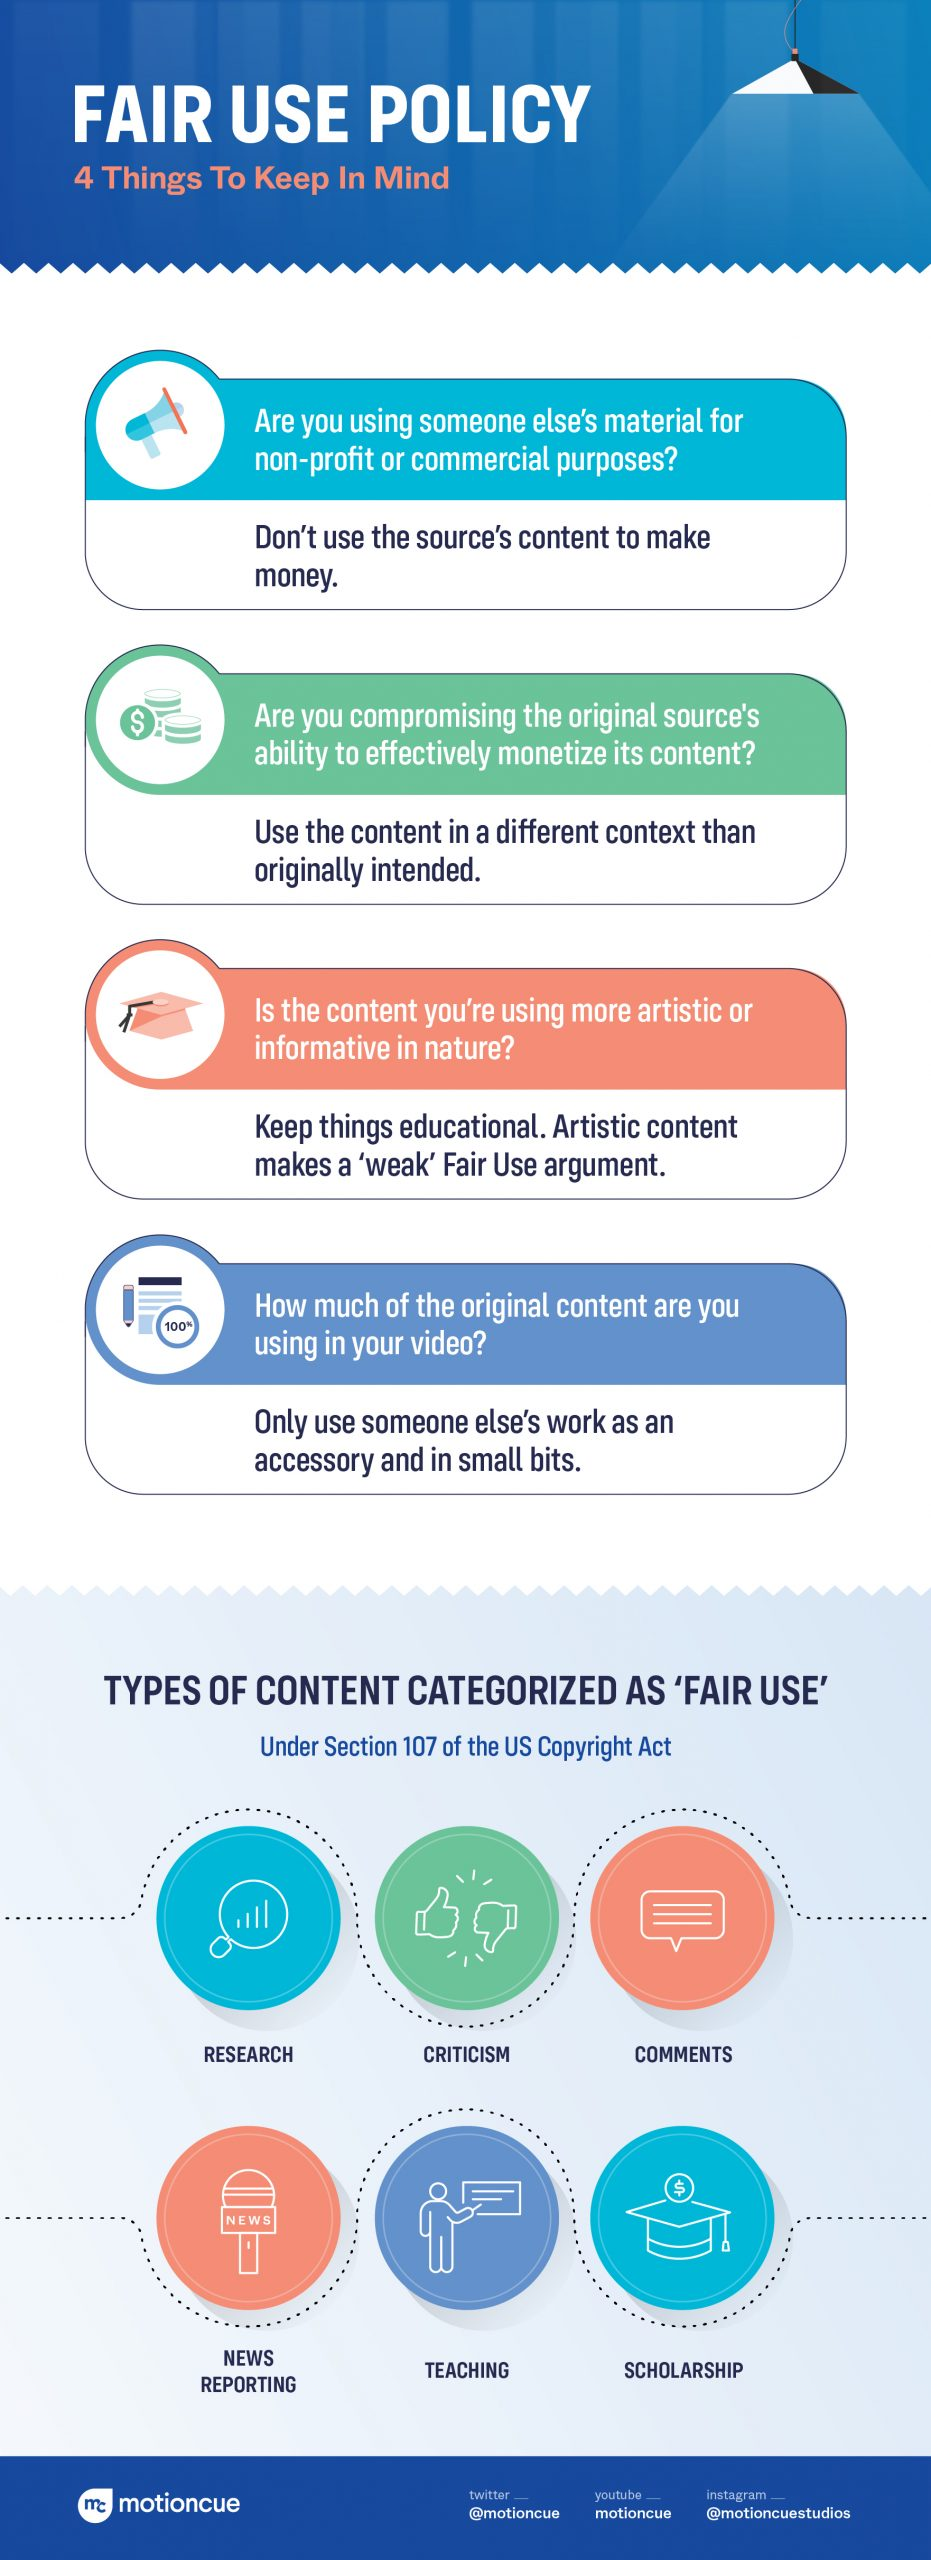 Fair Use Policy Infographic